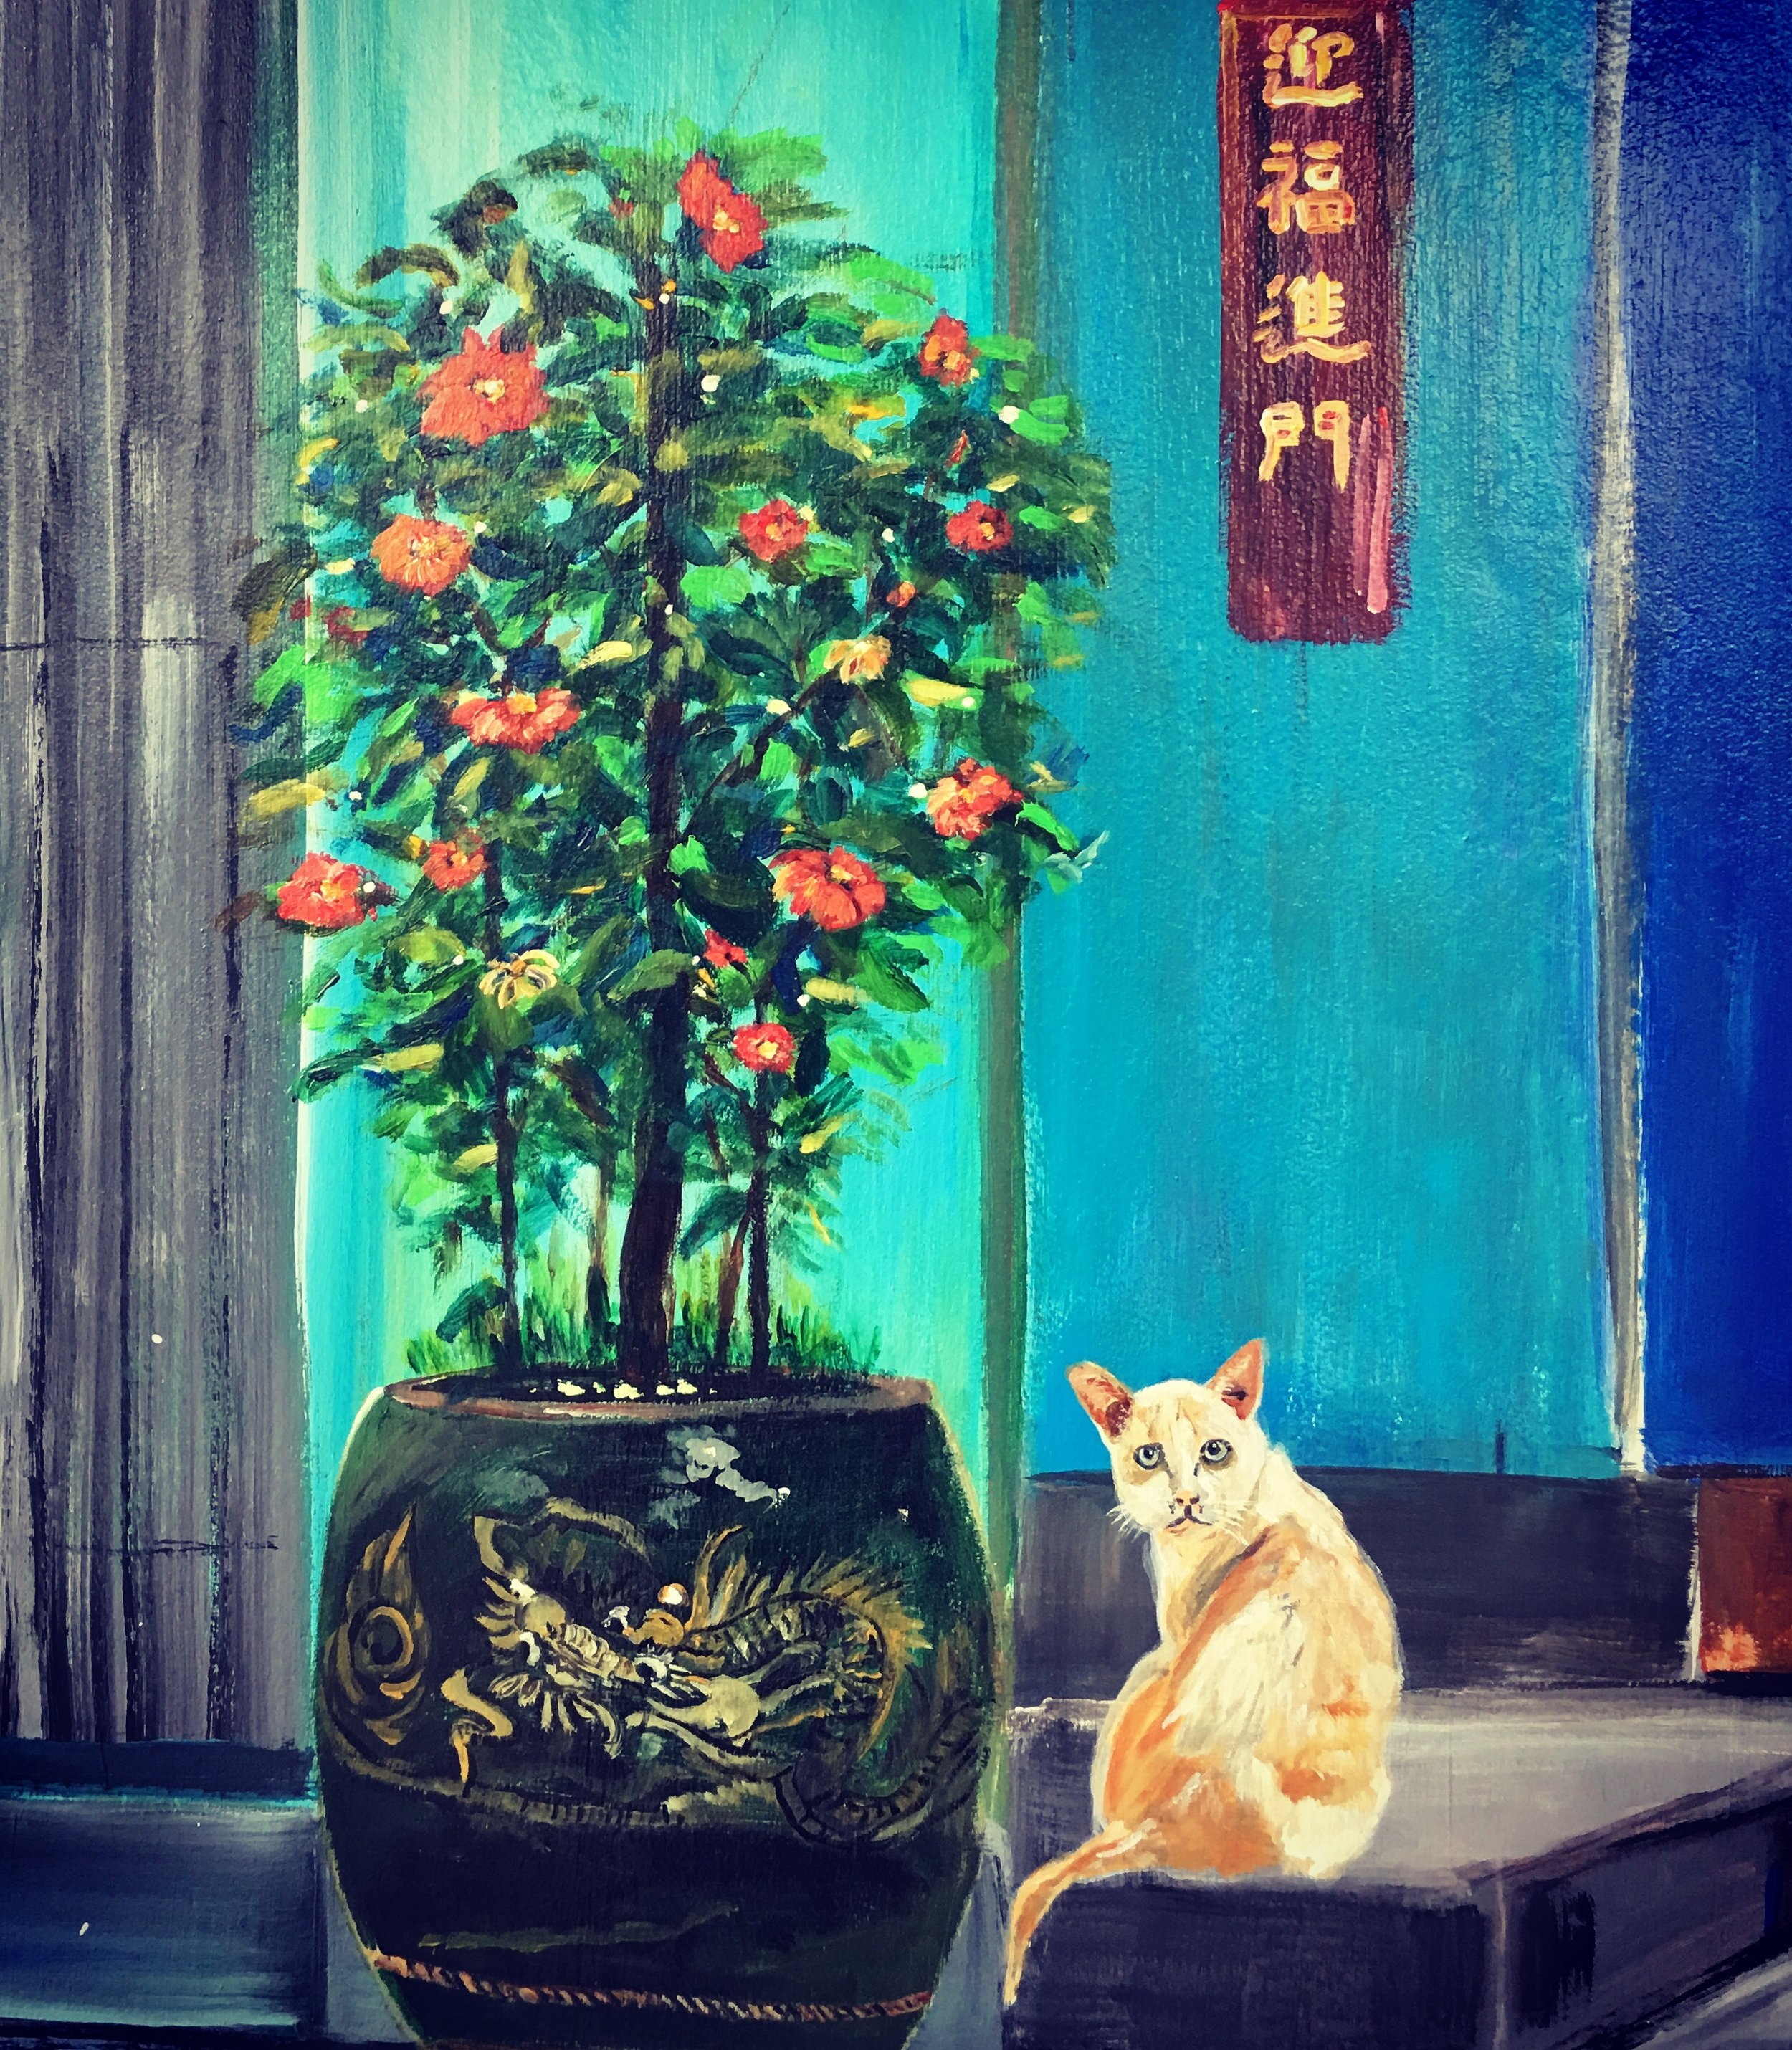 Details showing the vase I saw in the garden with the dragon motif which I added onto the wall.  The cat is looking at the bystander. and since the auspicious words that are commonly seen at entrances of Chinese houses.